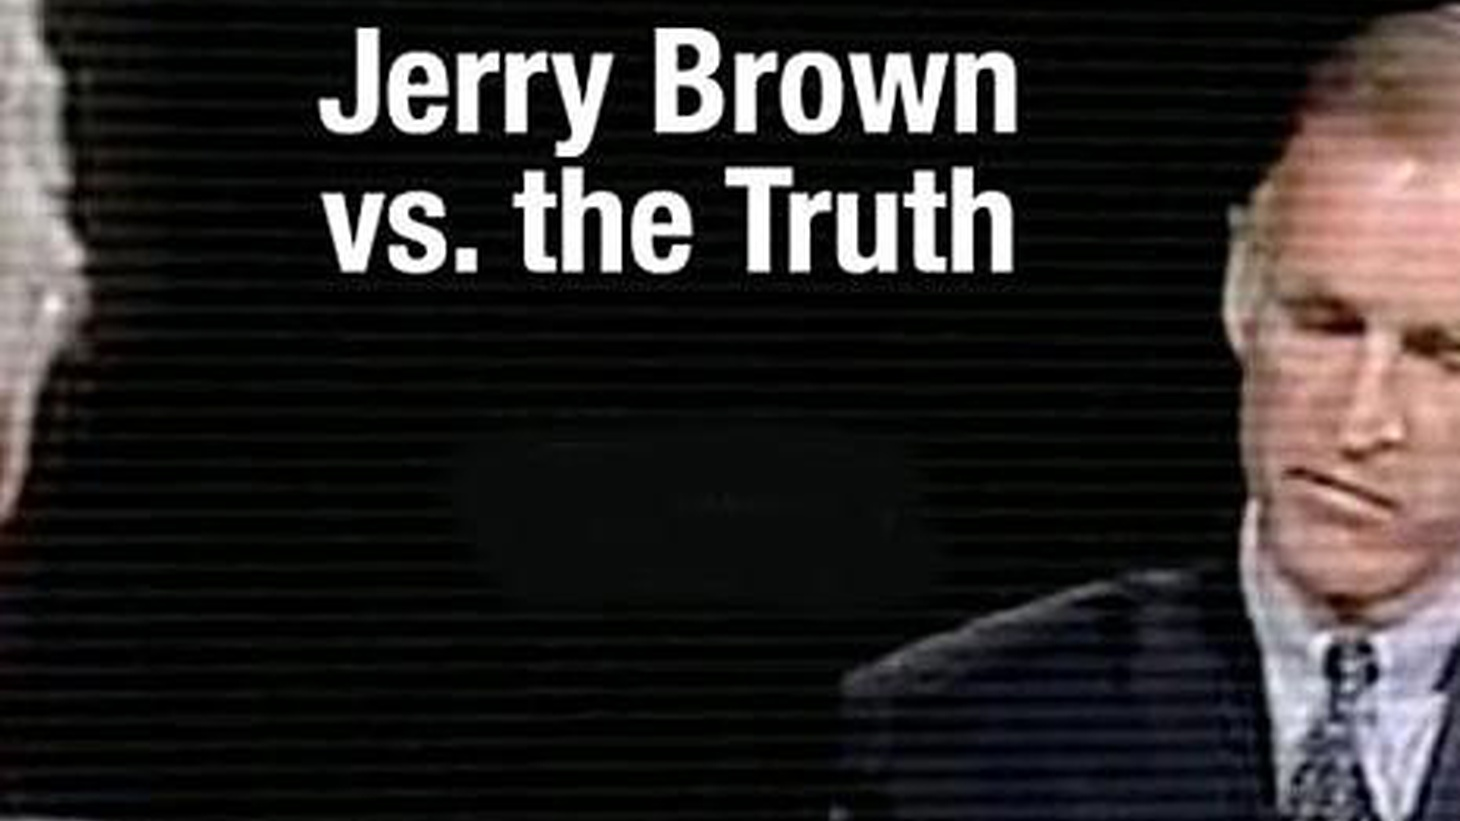 Meg Whitman and Jerry Brown have been short on important specifics so far, but their contest has heated up with accusations of using TV spots to lie. Did Brown really raise taxes when he was governor 35 years ago? What does Bill Clinton have to do with it? Do Whitman's plans to reduce spending really mean cutting $7 billion from education? Who's setting the agenda, and who's on defense? In a close race, is either candidate reaching the Independents who will decide the election? Also, will the LA City Council approve tough new rules on accepting free tickets to public events? On our rebroadcast of To the Point, how safe are America's natural-gas pipelines?